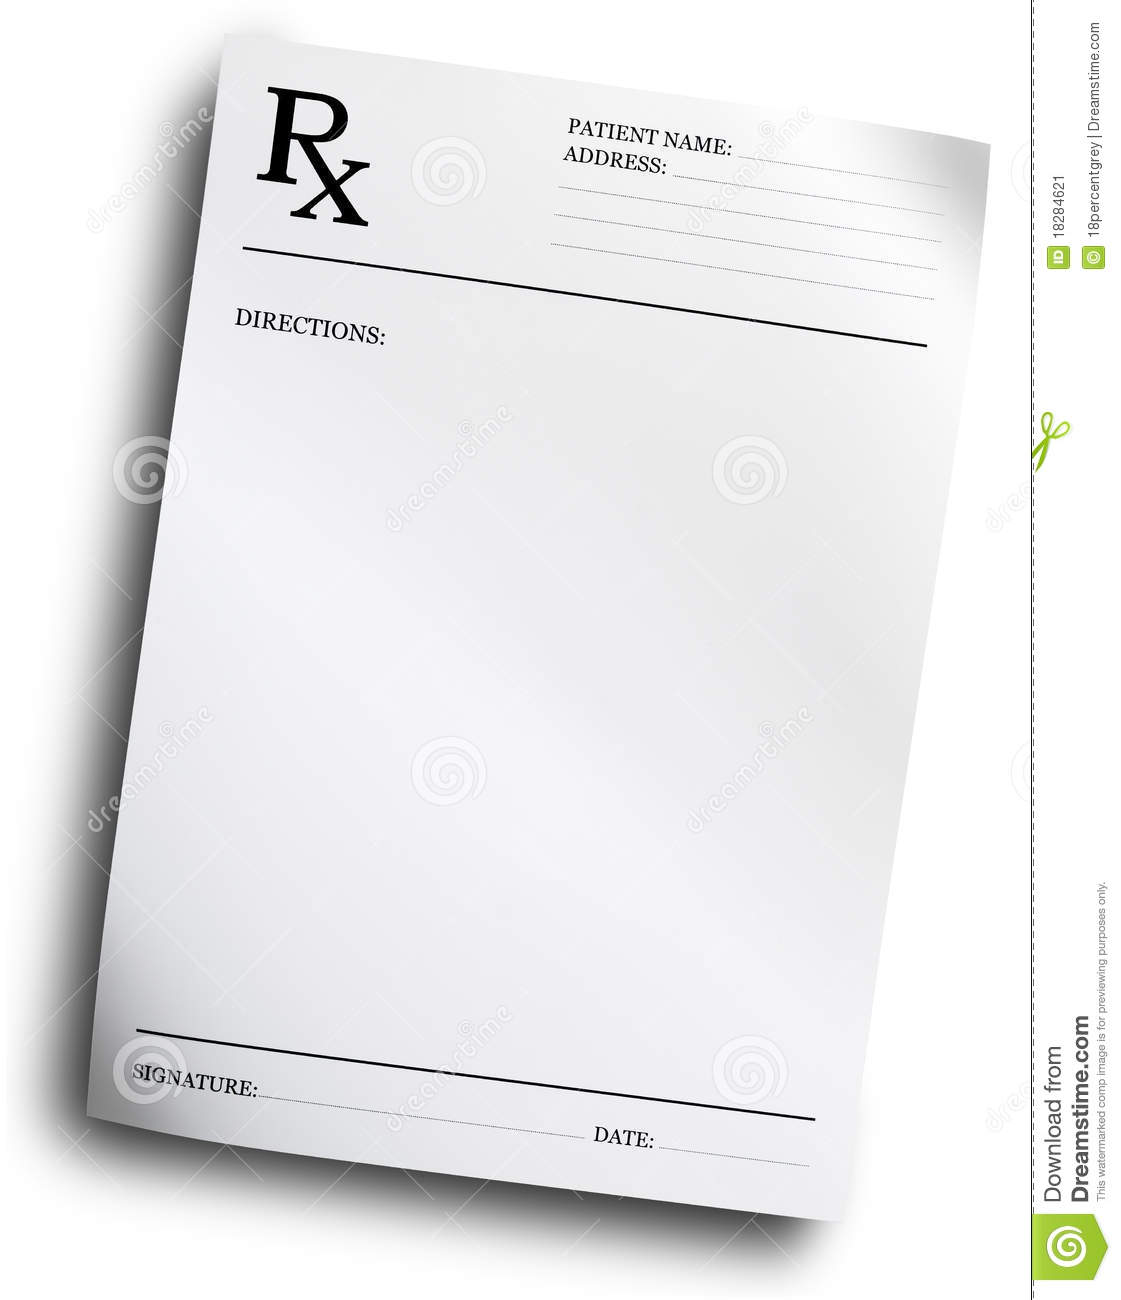 RX Prescription Form Stock Image - Image: 18284621